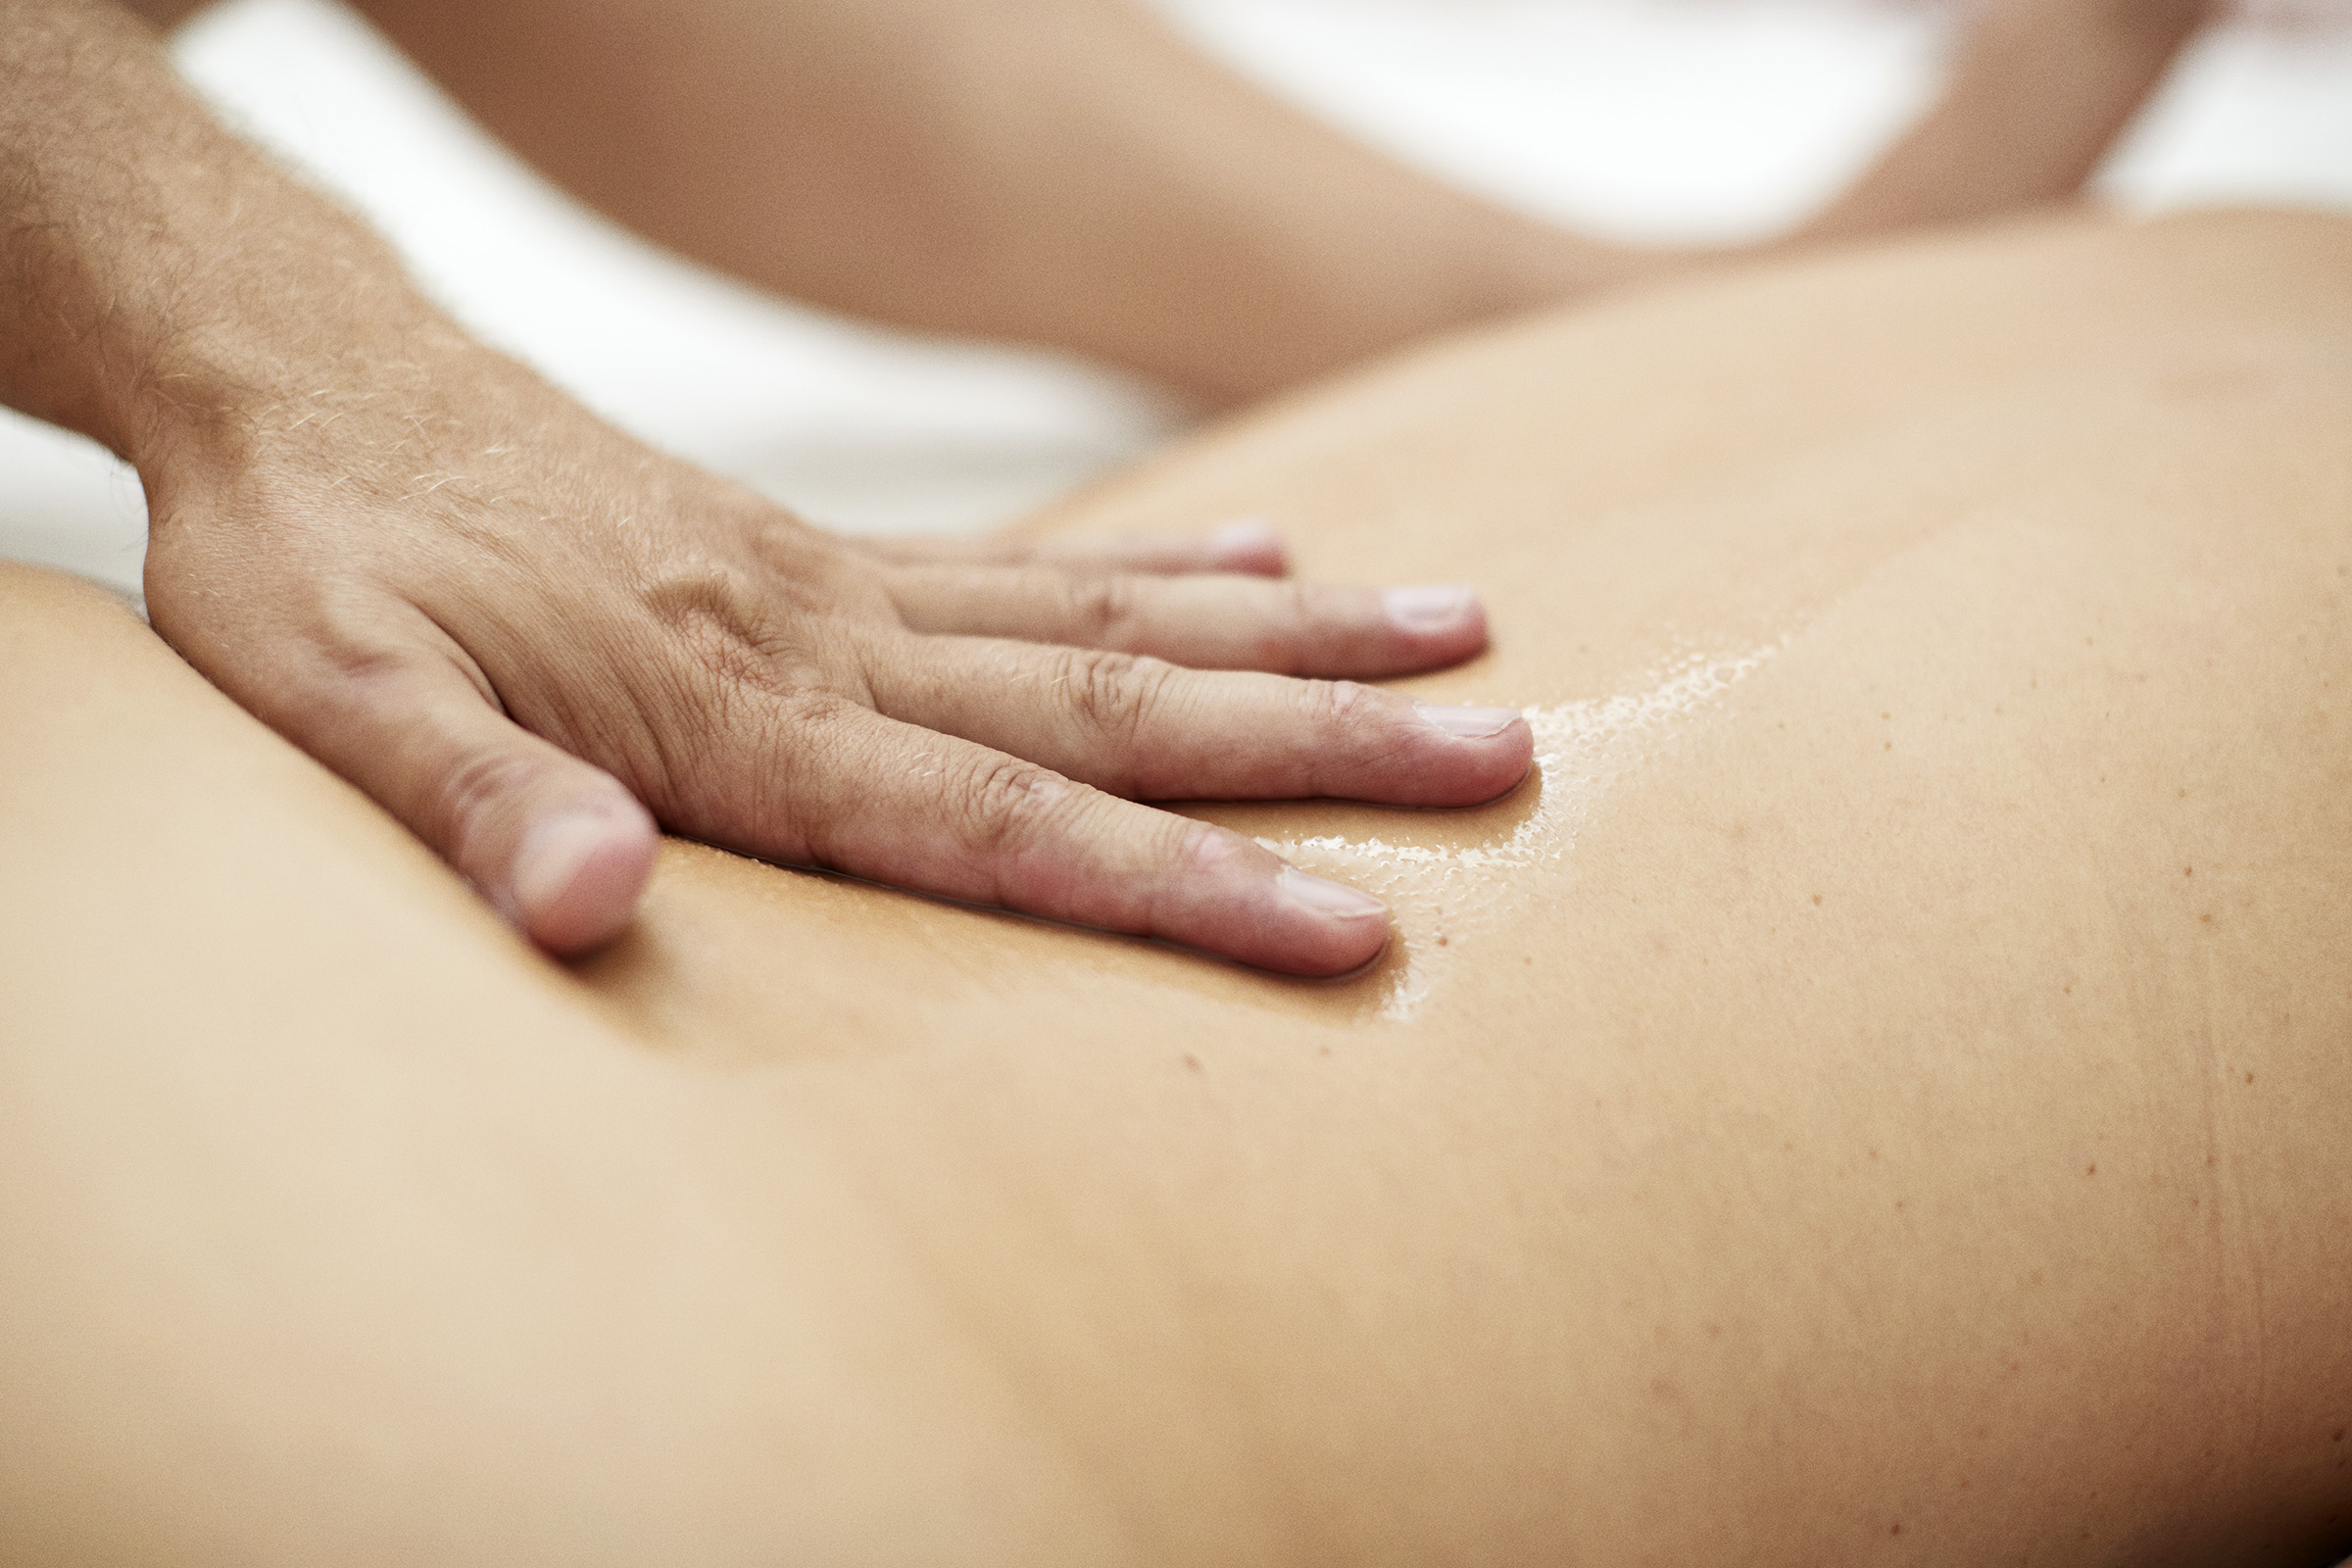 copenhagen gay massage pik i kusse